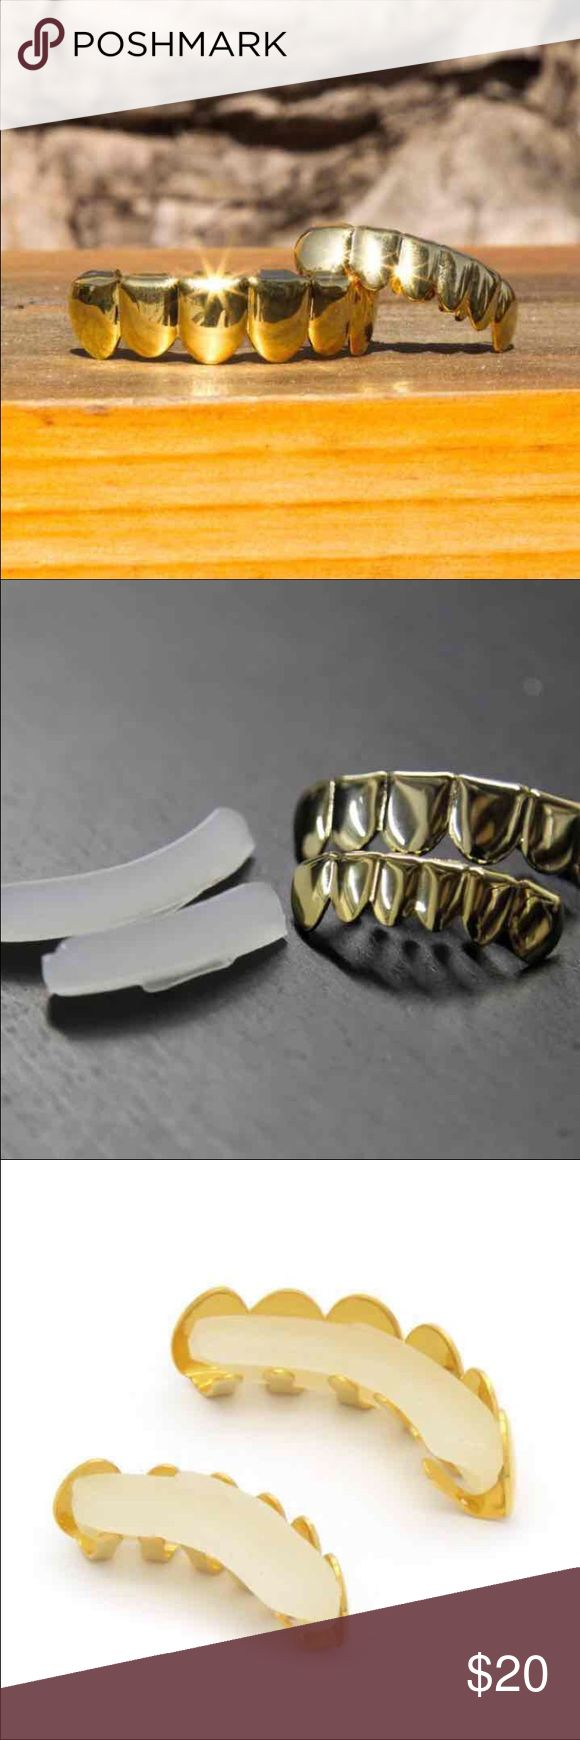 New 14k Gold Plated Top & Bottom Row Grillz FREE SHIPPING! BRAND NEW!  Grillz are designed perfectly for your top & bottom row teeth and is one size fits all. Includes two silicon fixing bars that fits your teeth and keeps the Grillz on tight. COMES WITH EASY TO FOLLOW INSTRUCTIONS AND READY TO WEAR IN MINUTES! Each grill can fit any teeth matter how straight or crooked your teeth are.  You can put the Grillz on anytime and remove them easily whenever you want :D Jewelry